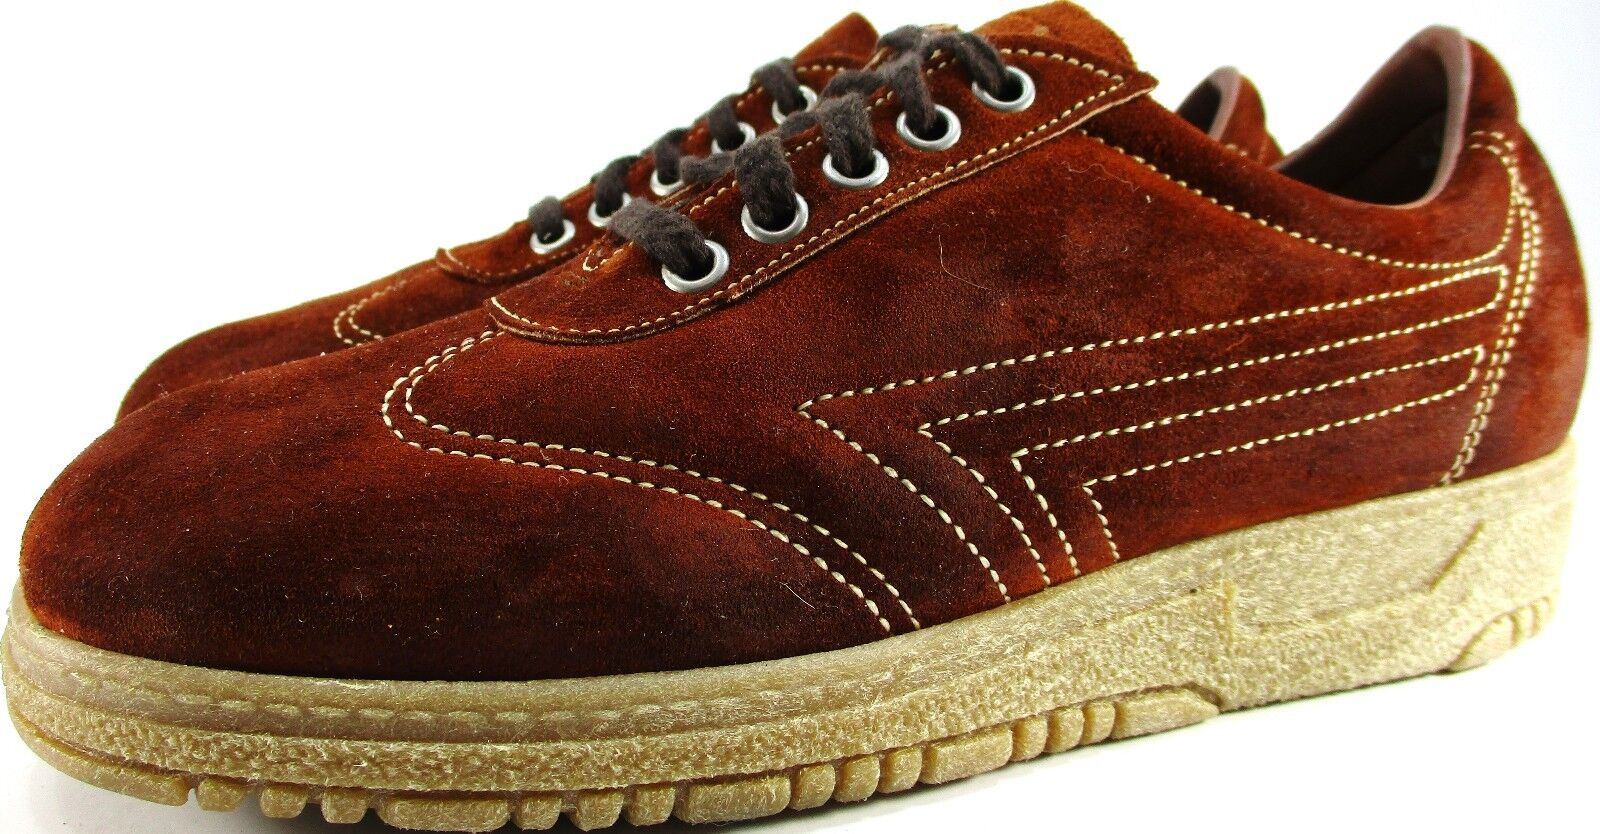 Crosby Square Juniors Men suede Shoes Size 6.5 Brown Style 5091 Made In USA